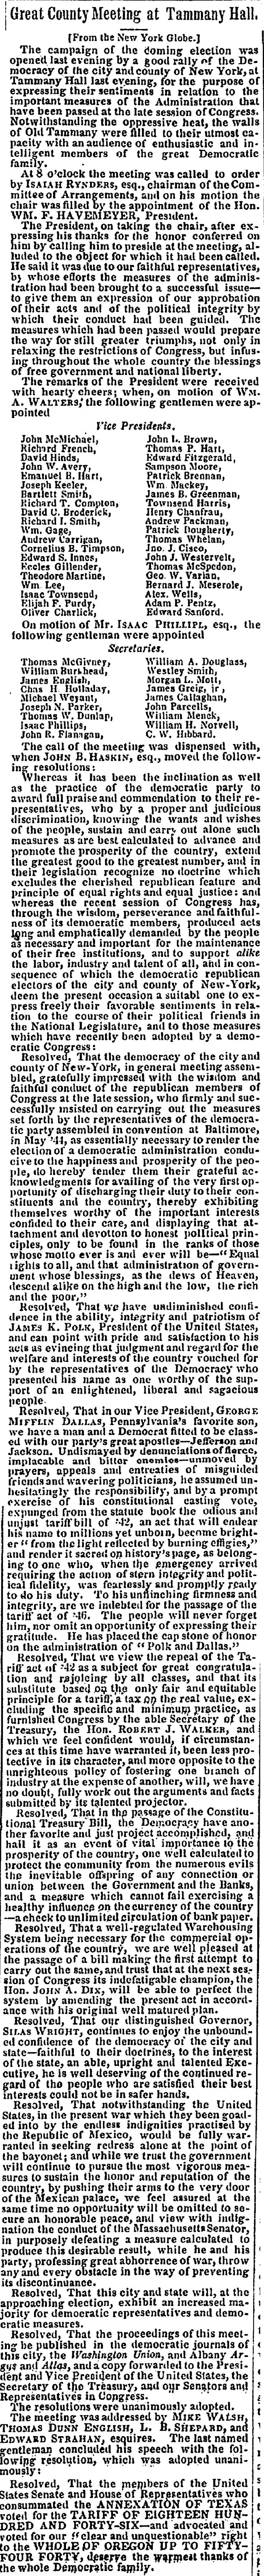 "1846. Democrat Party Platform. ""Great County Meeting at Tammany Hall"" Rynders, Chanfrau, Purdy, Broderick, WALSH etc..."